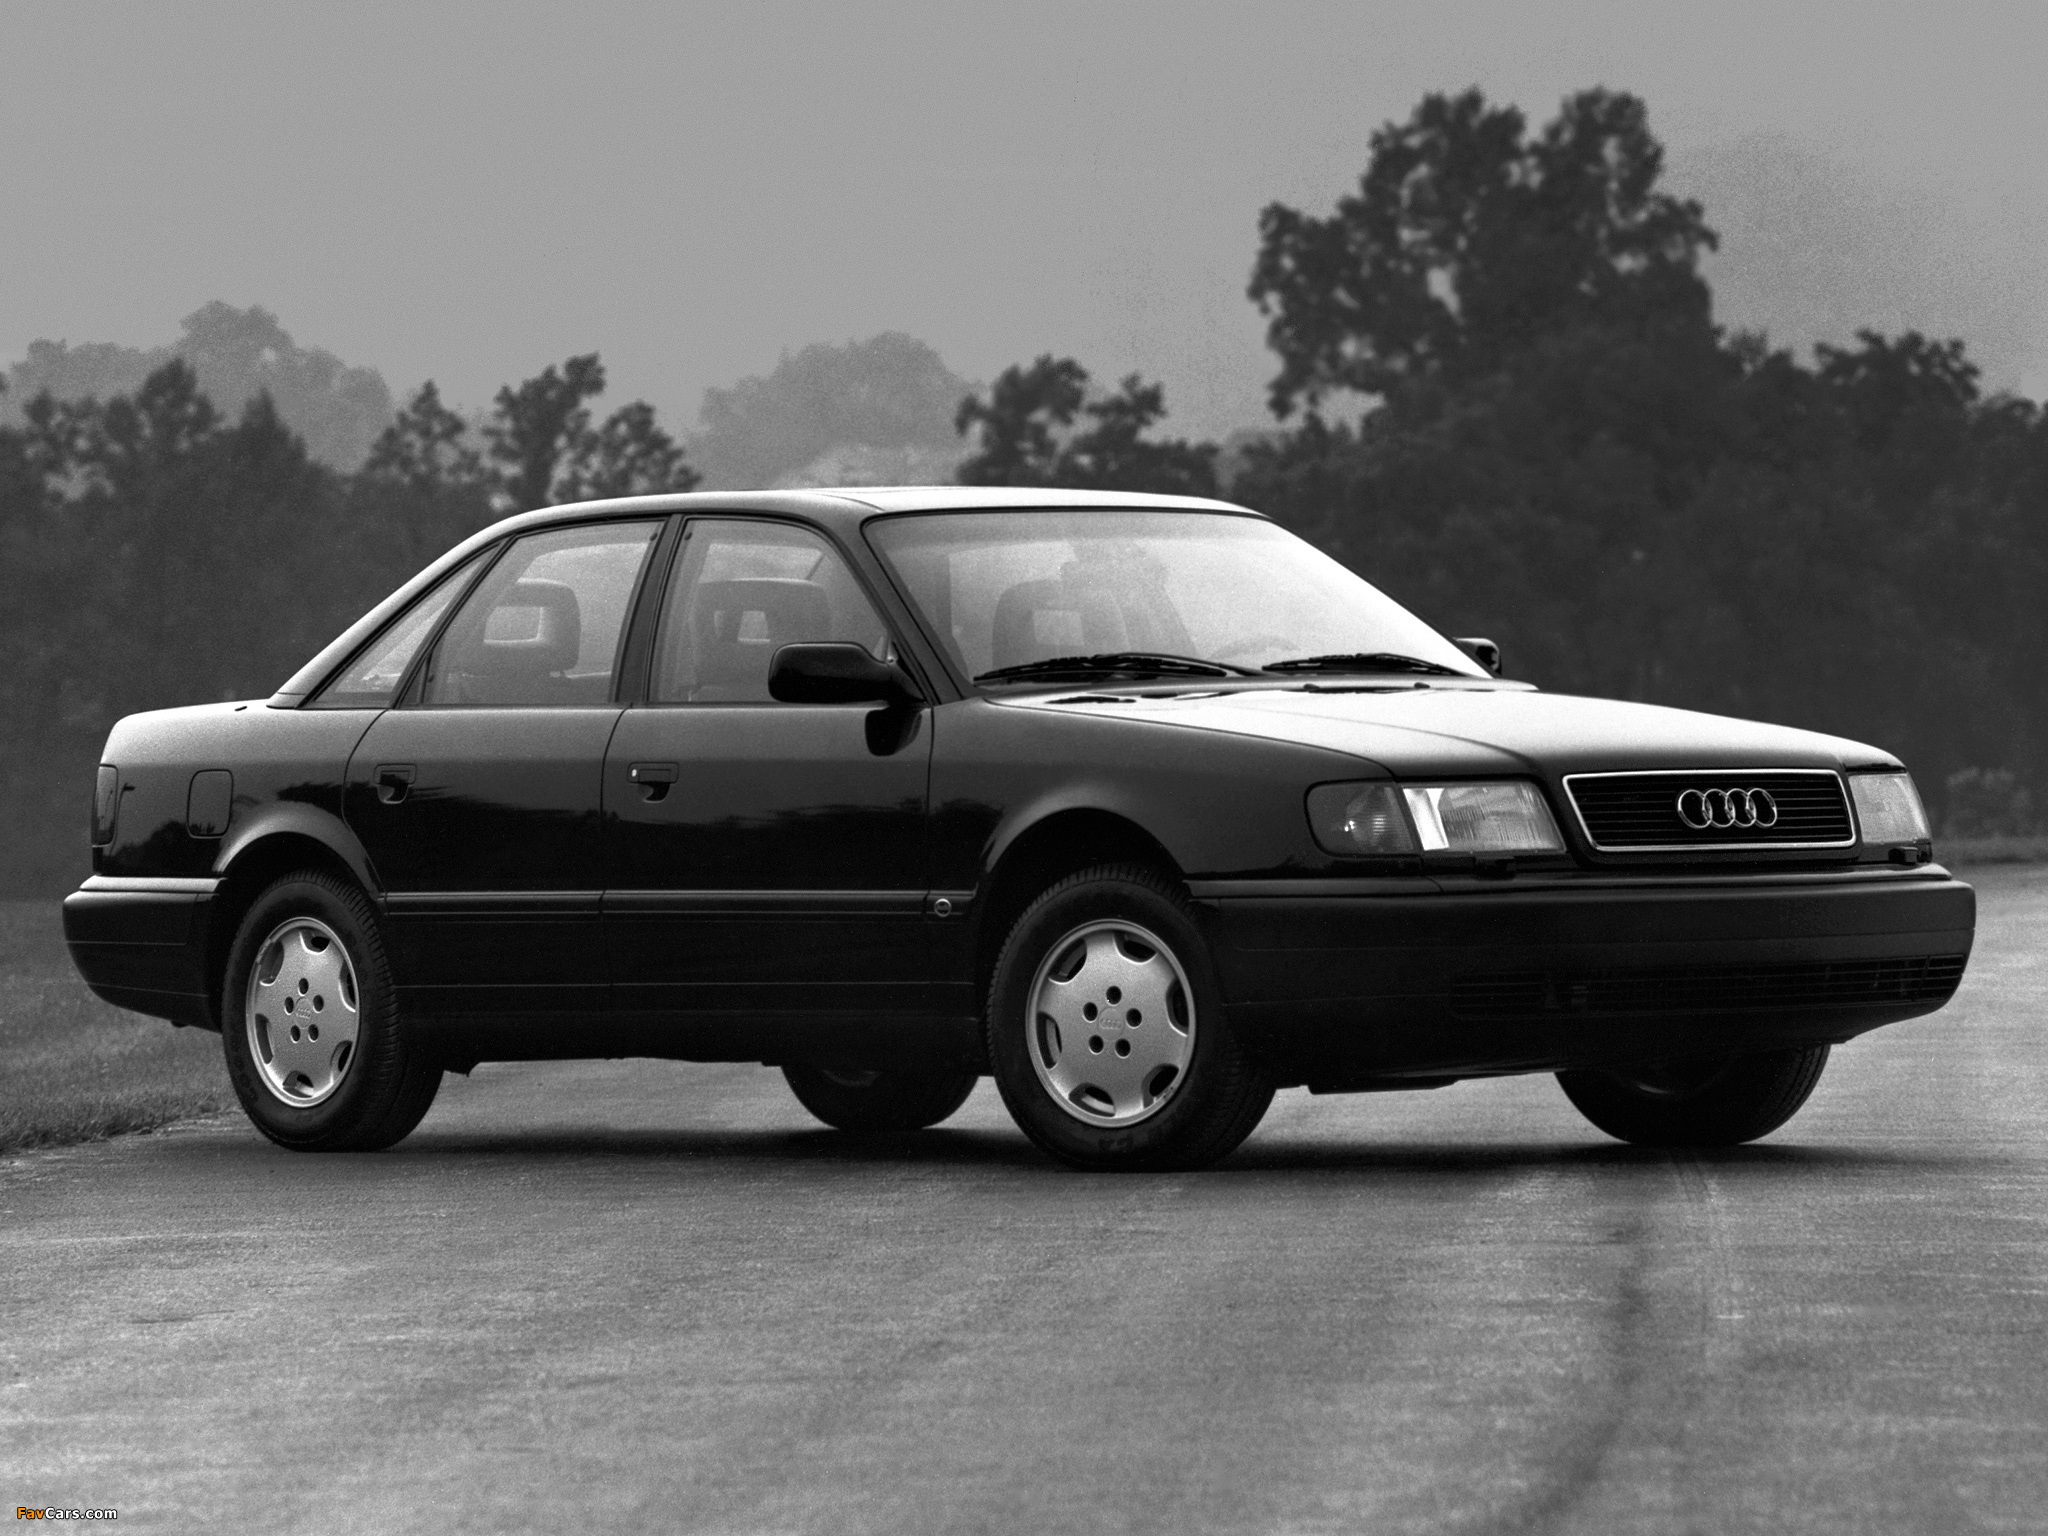 Audi 100 Us Spec 4a C4 1990 1994 Wallpapers 2048x1536